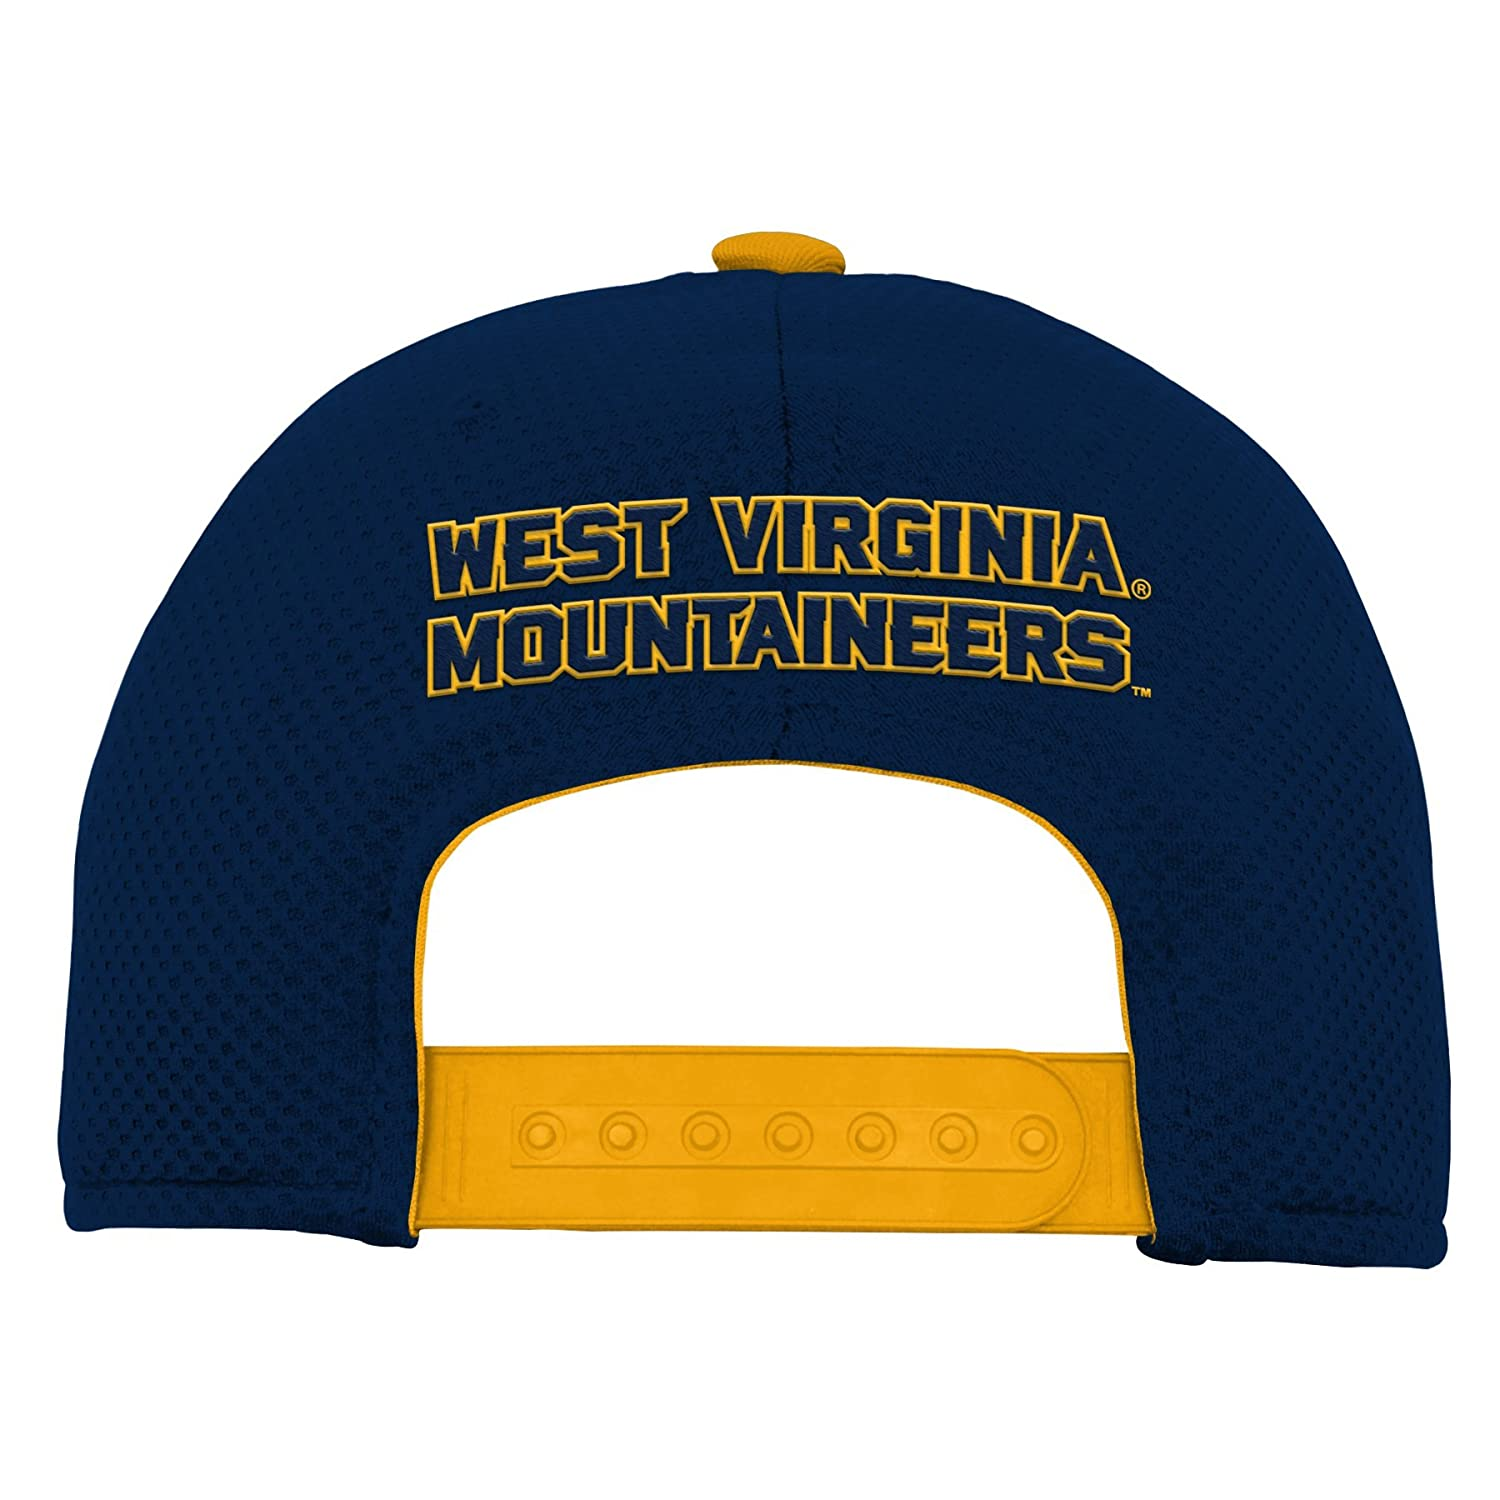 Youth One Size NCAA West Virginia Mountaineers Youth Outerstuff Tech Structured Snapback Hat Team Color